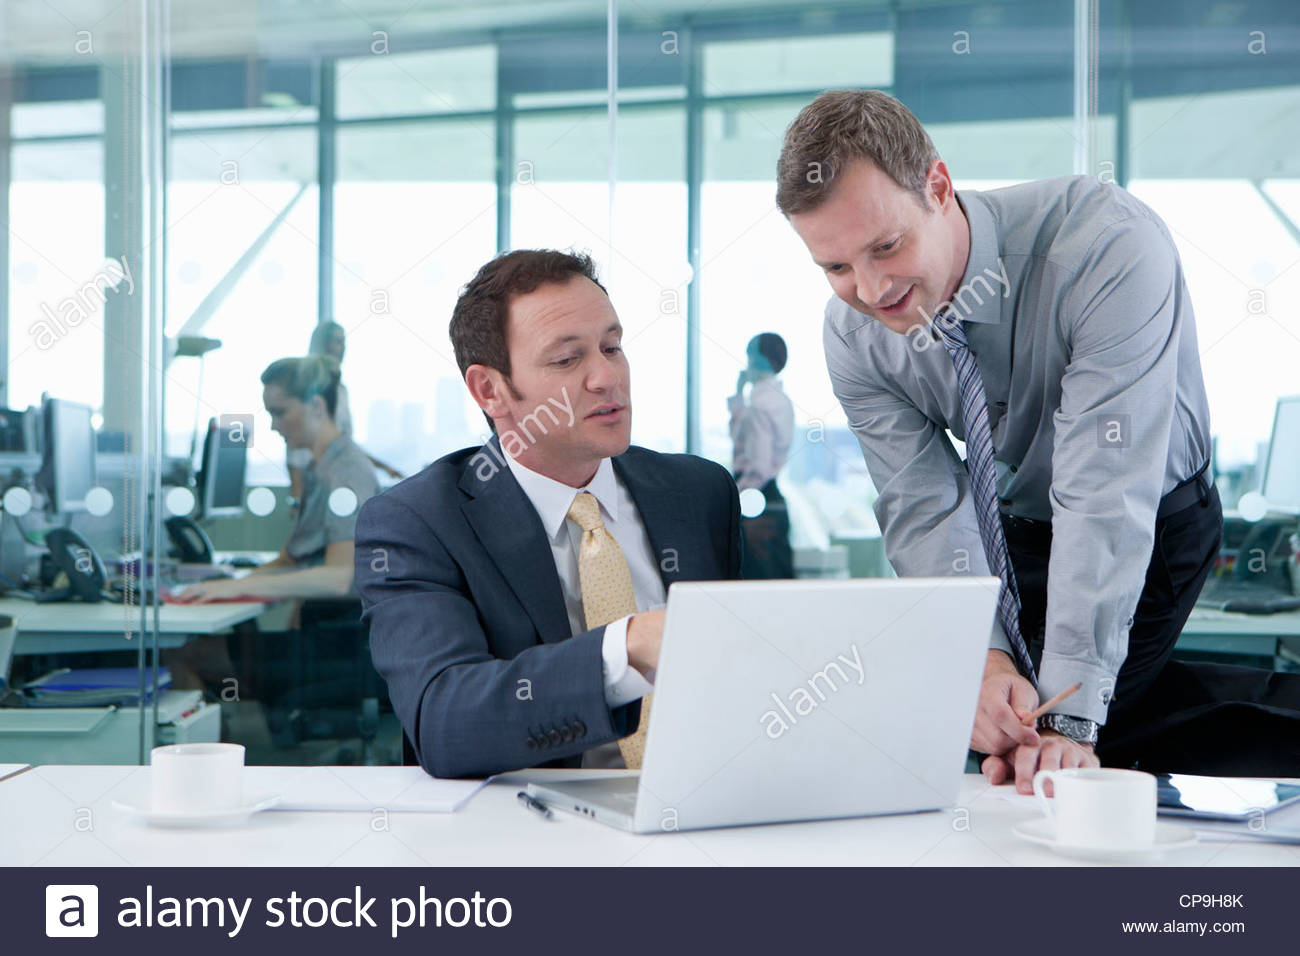 Businessmen working at laptop in conference room - Stock Image